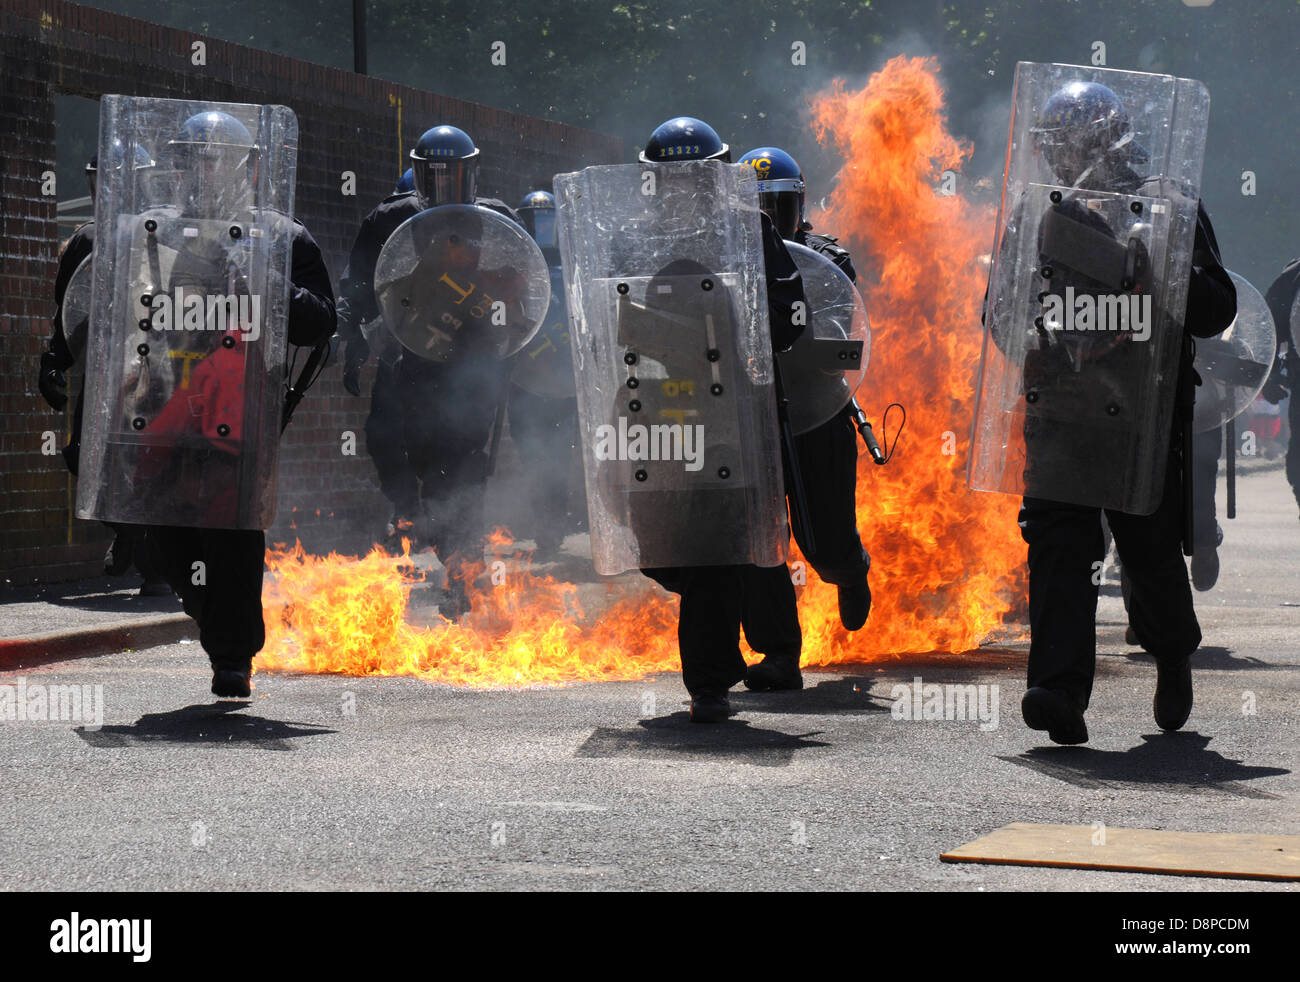 Hampshire, England, June 2013. Police undertake training against petrol bombs. Fire and flying glass. - Stock Image